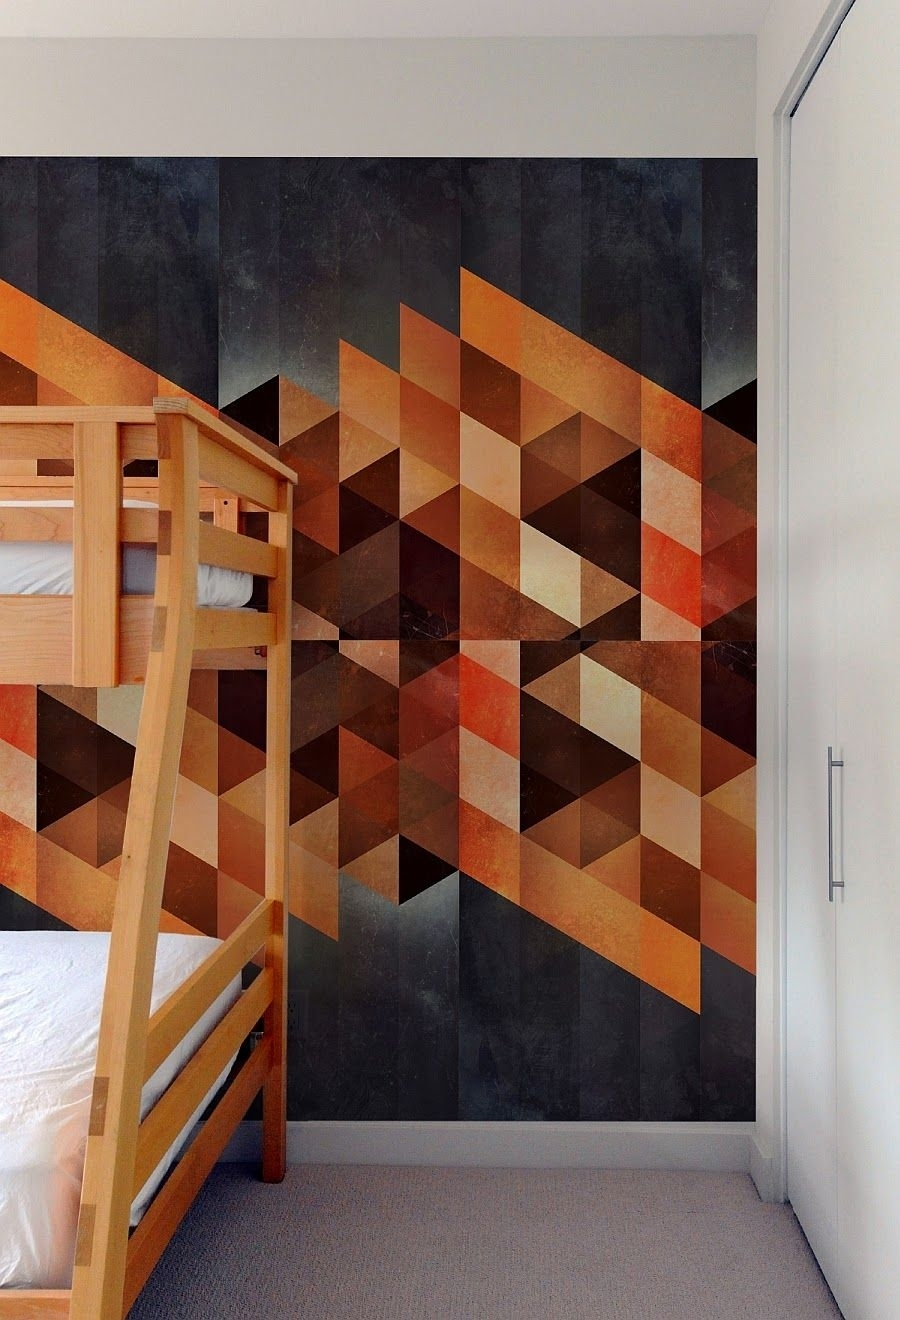 22 ???? ?????????????? ?????? ?? ????? | ????? | Pinterest | Wall Intended For Newest Geometric Shapes Wall Accents (View 1 of 15)